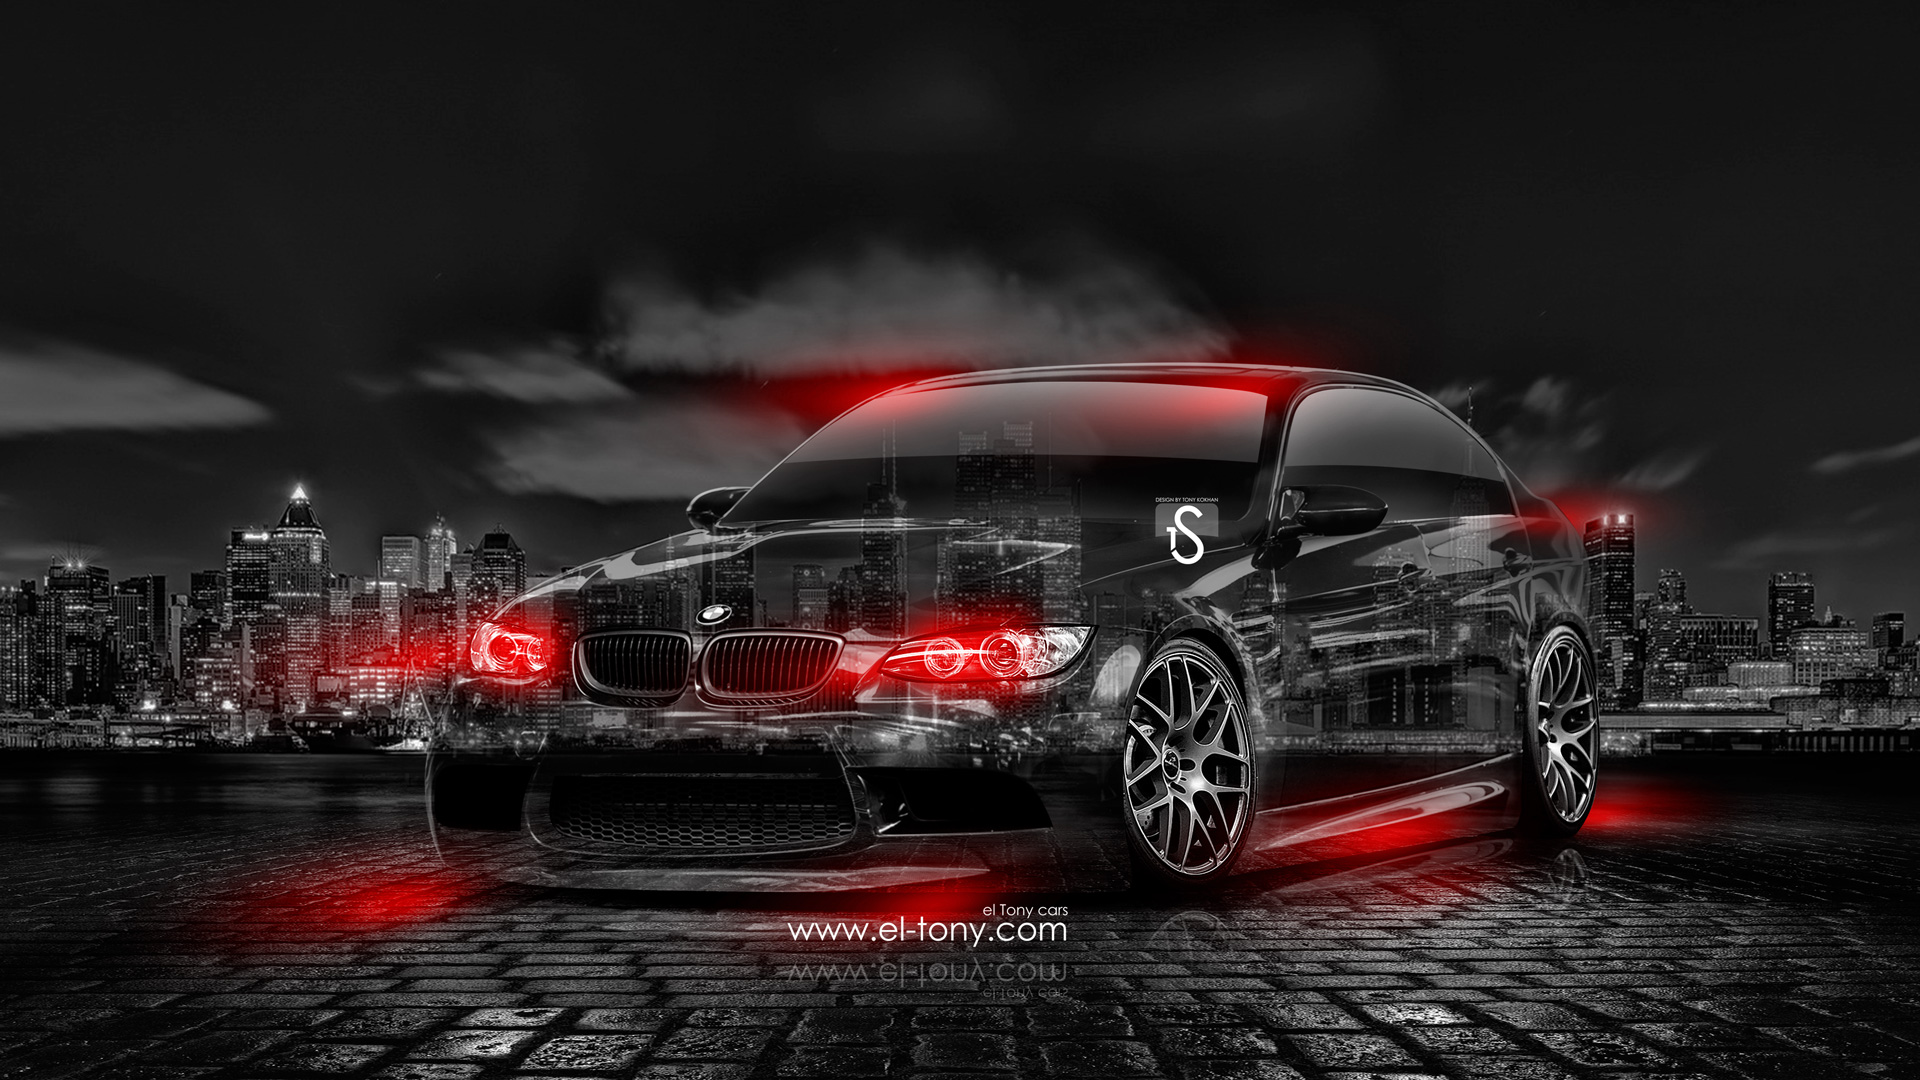 Bmw M3 E90 Crystal City Car 2014 El Tony